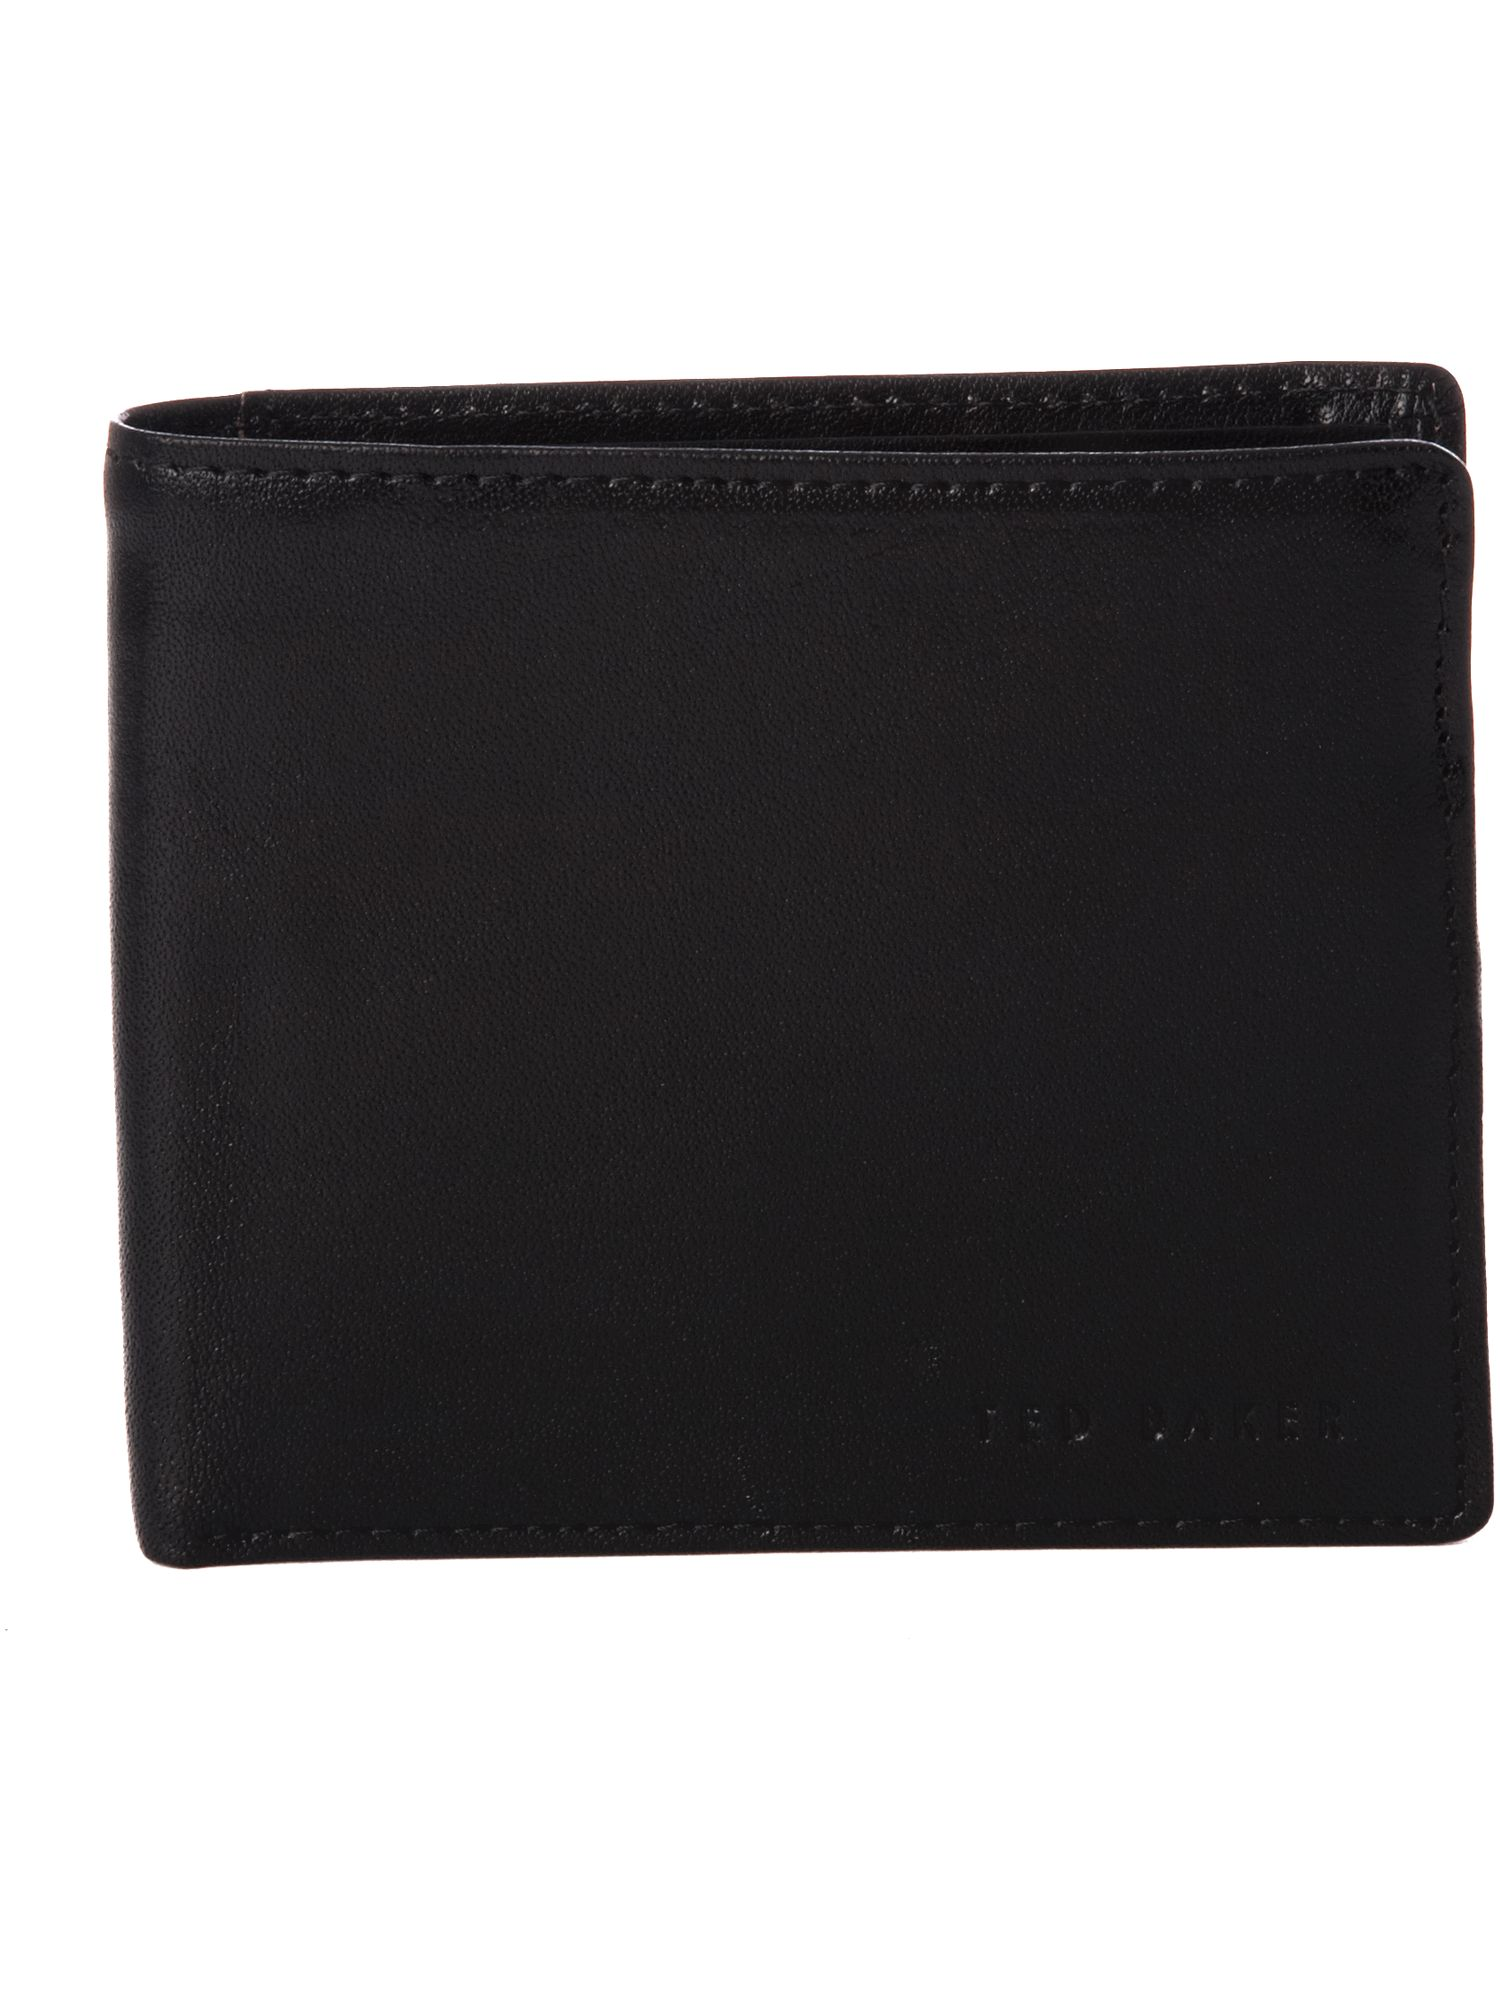 Ted Baker Card holder colour block wallet product image